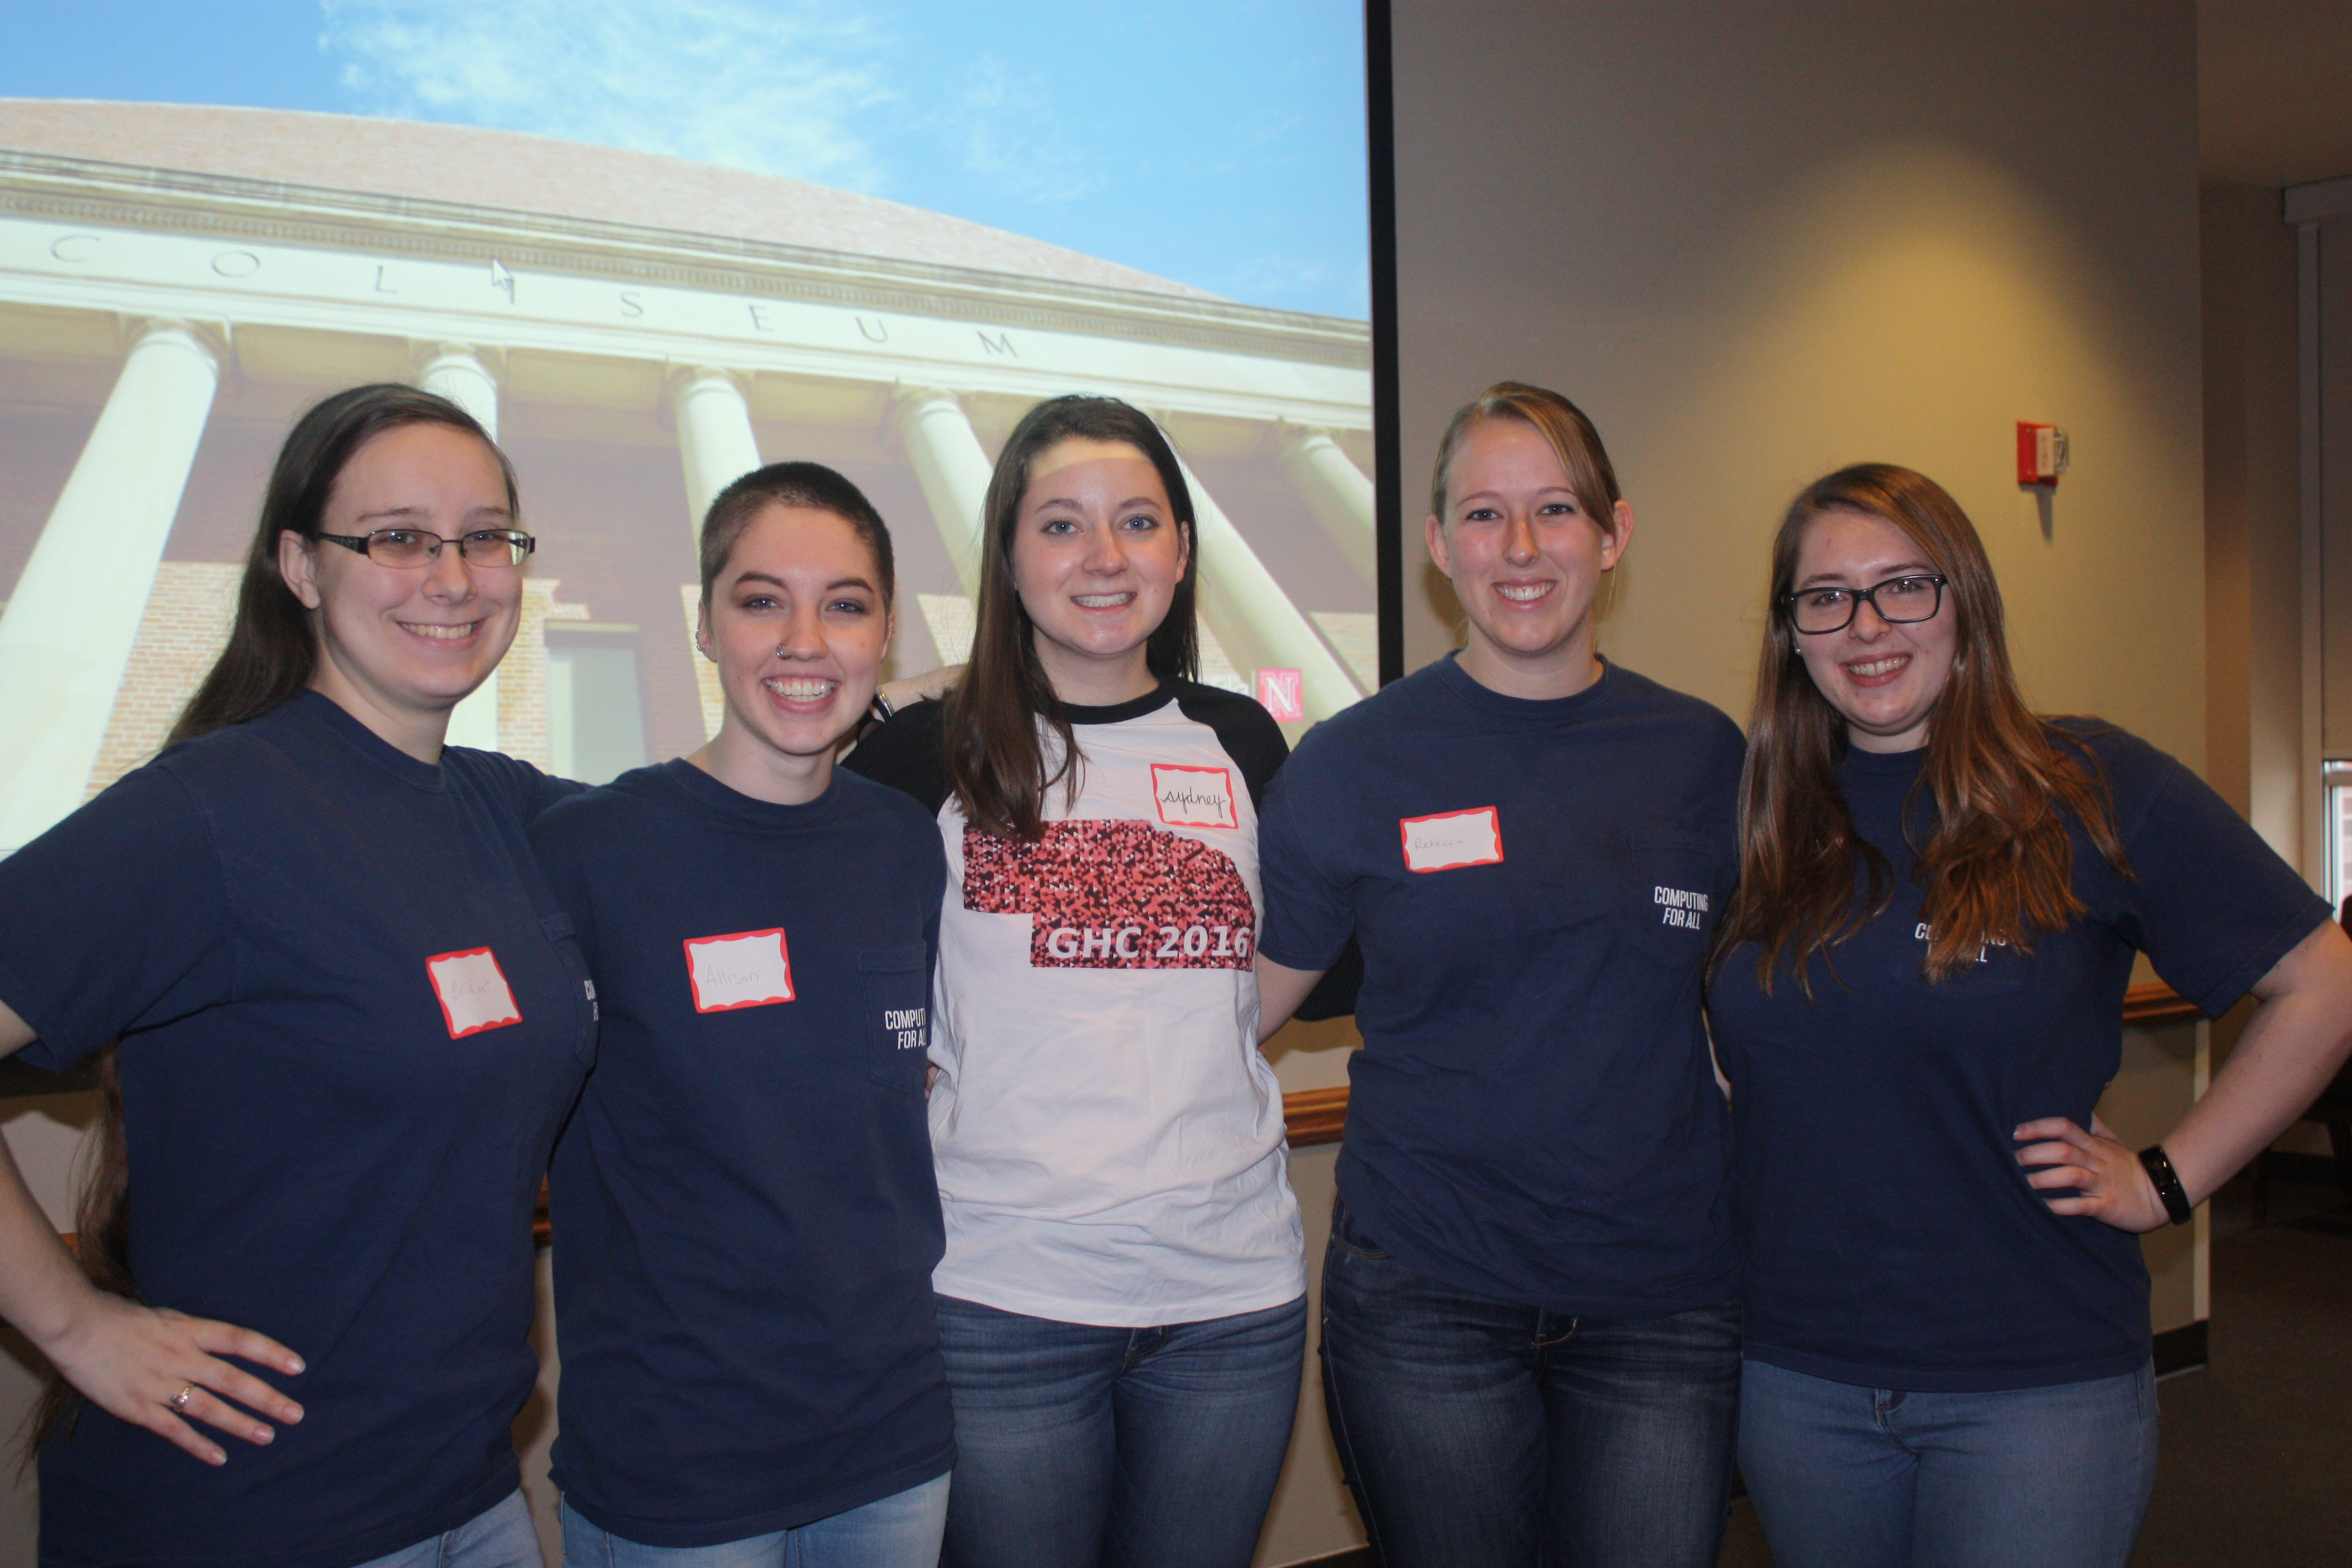 Computing for All members and CSE students Bridget Bailey, Allison Buckley, Sydney Goldberg, Rebecca Dahlman, and Melanie Powell serving as student mentors at the Girl Scouts CS Unplugged event.